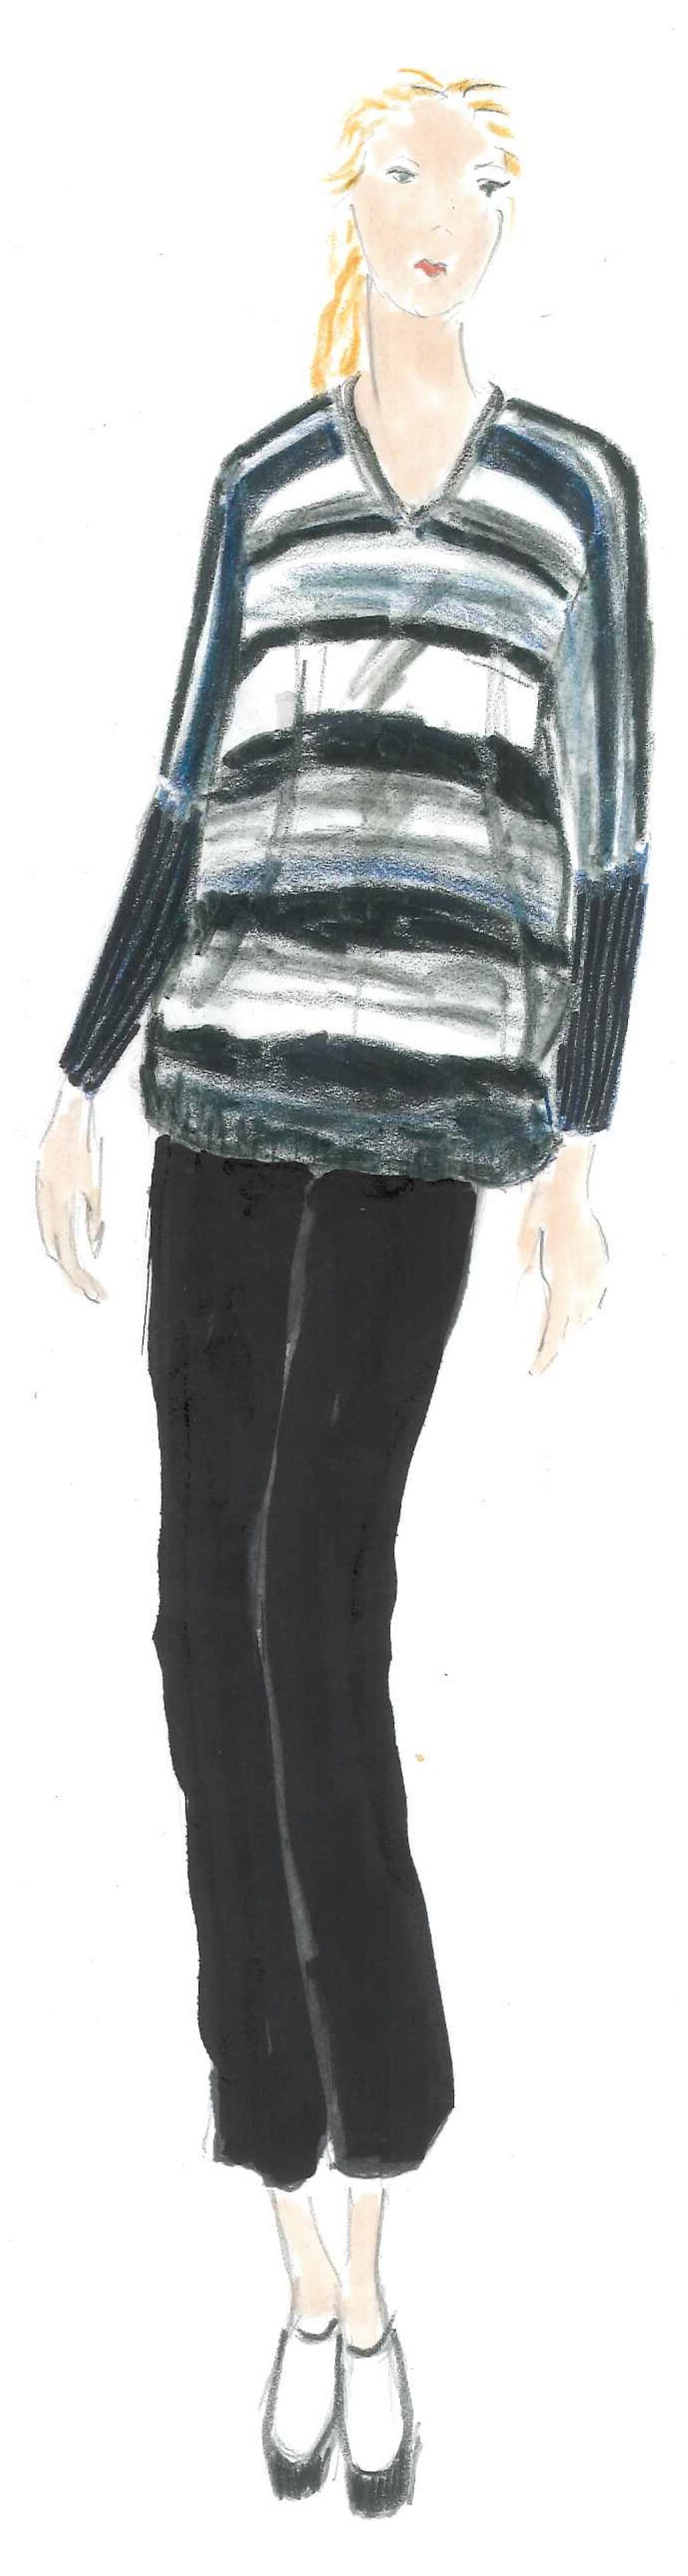 stripe_sweater_sketch.jpg